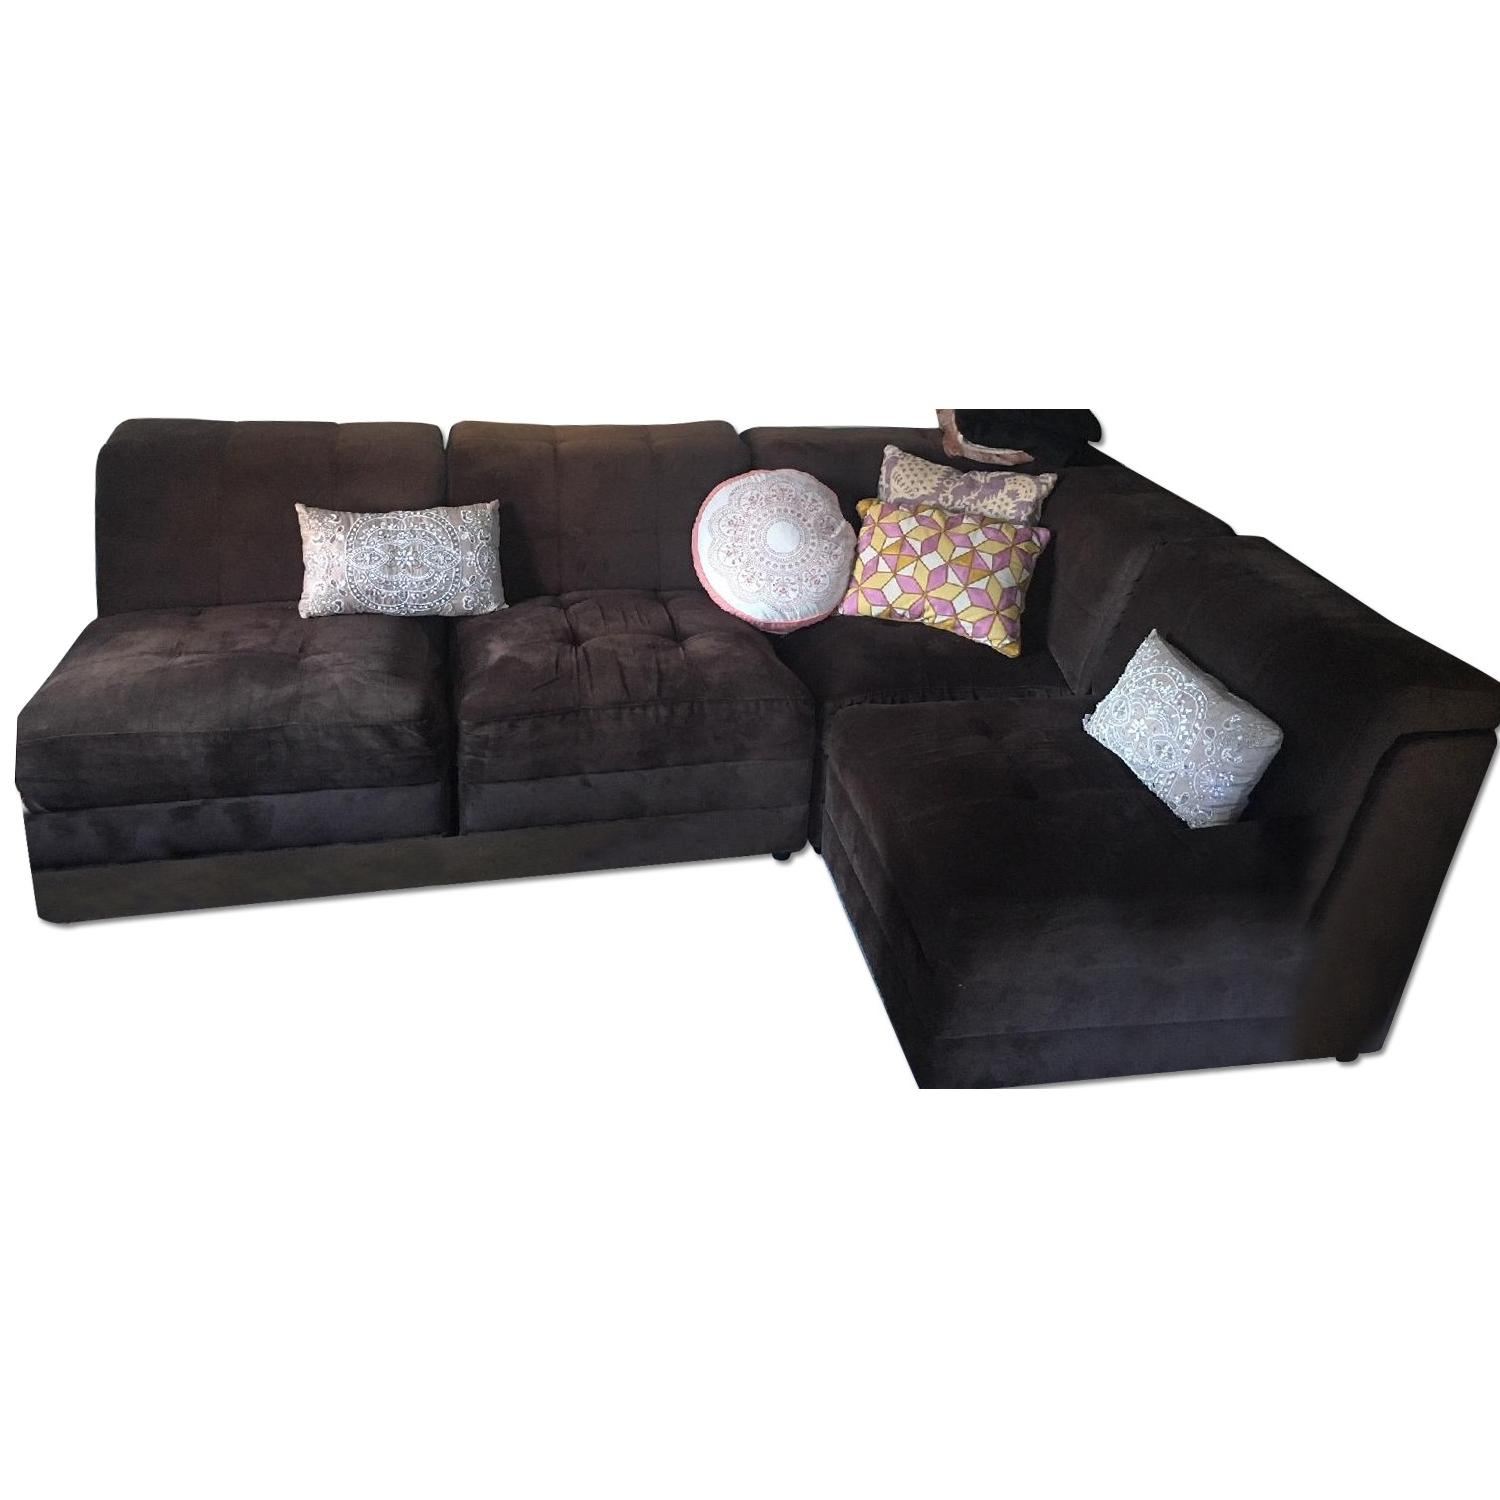 Bob s 4 Piece Sectional Couch AptDeco